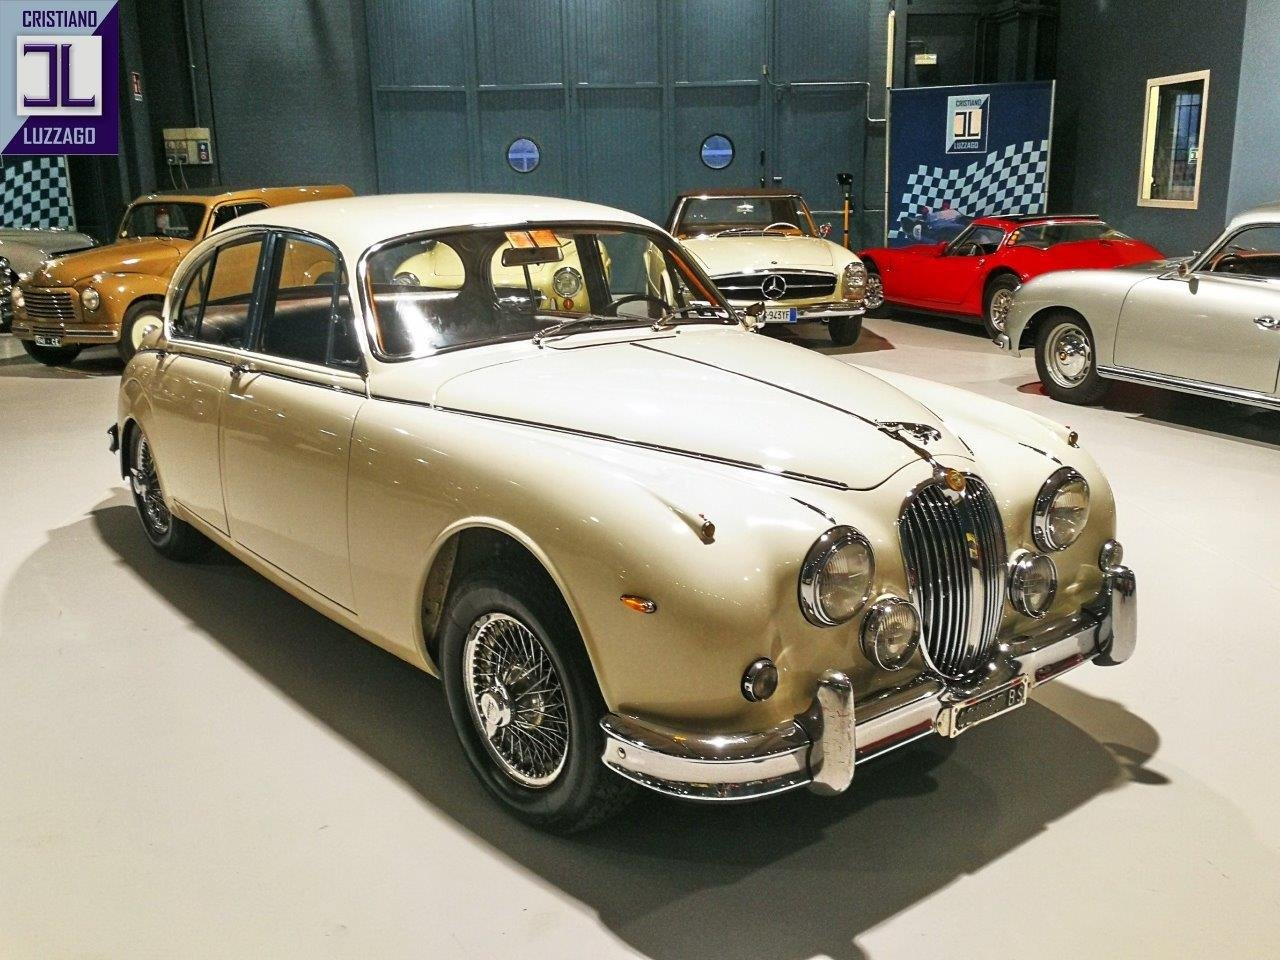 1967 JAGUAR MK2 3.800 SALOON WITH POWER STEERING AND AIR CON For Sale (picture 2 of 6)